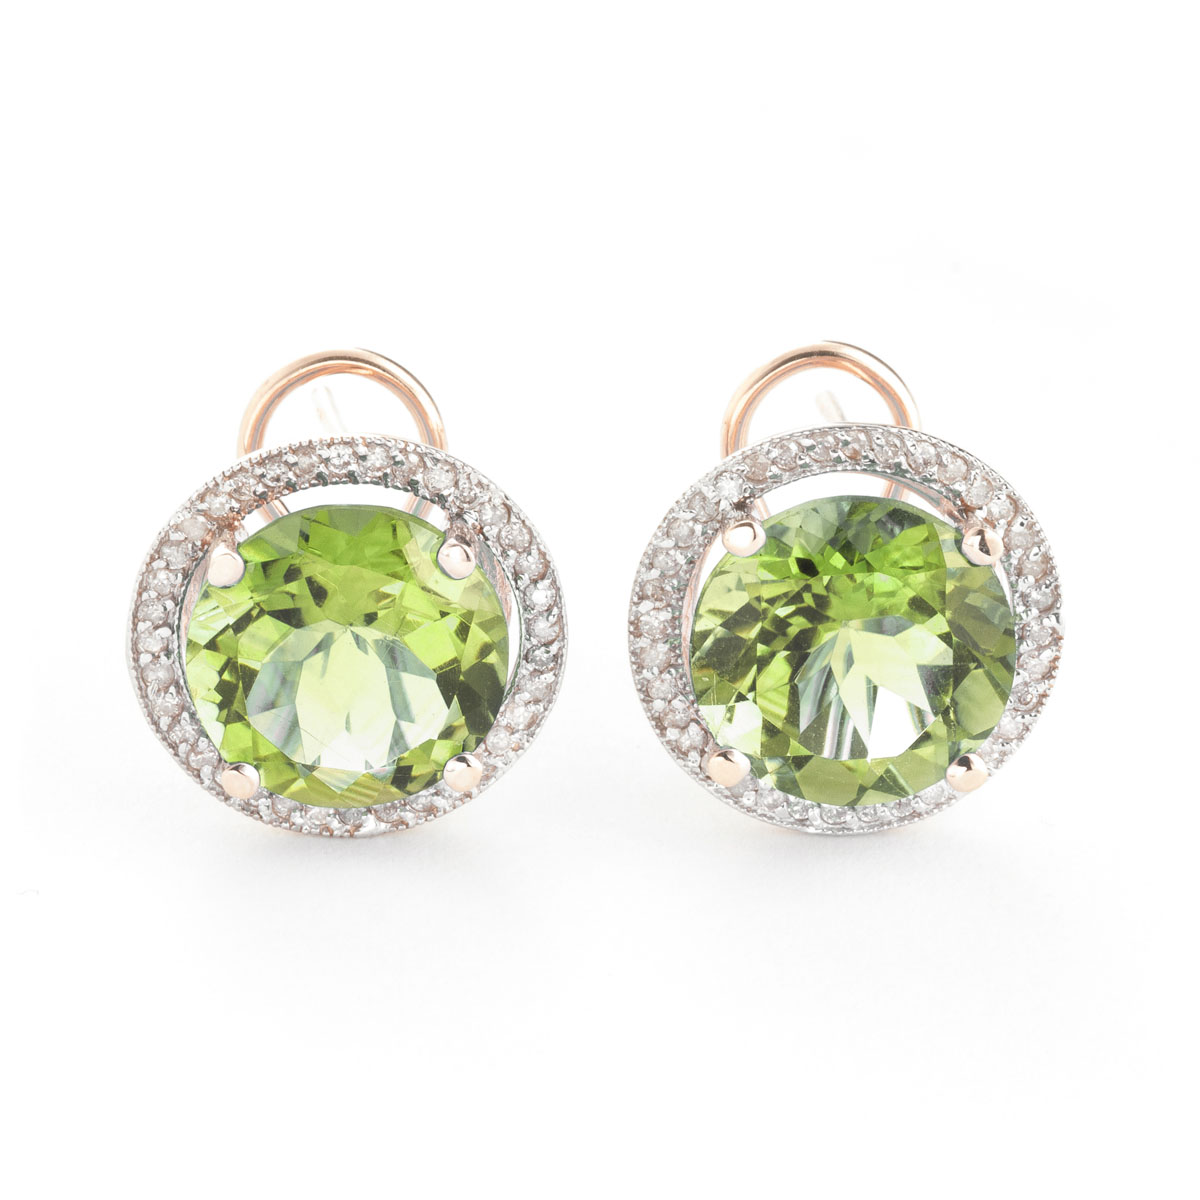 Green Amethyst French Clip Halo Earrings 10.4 ctw in 9ct Rose Gold